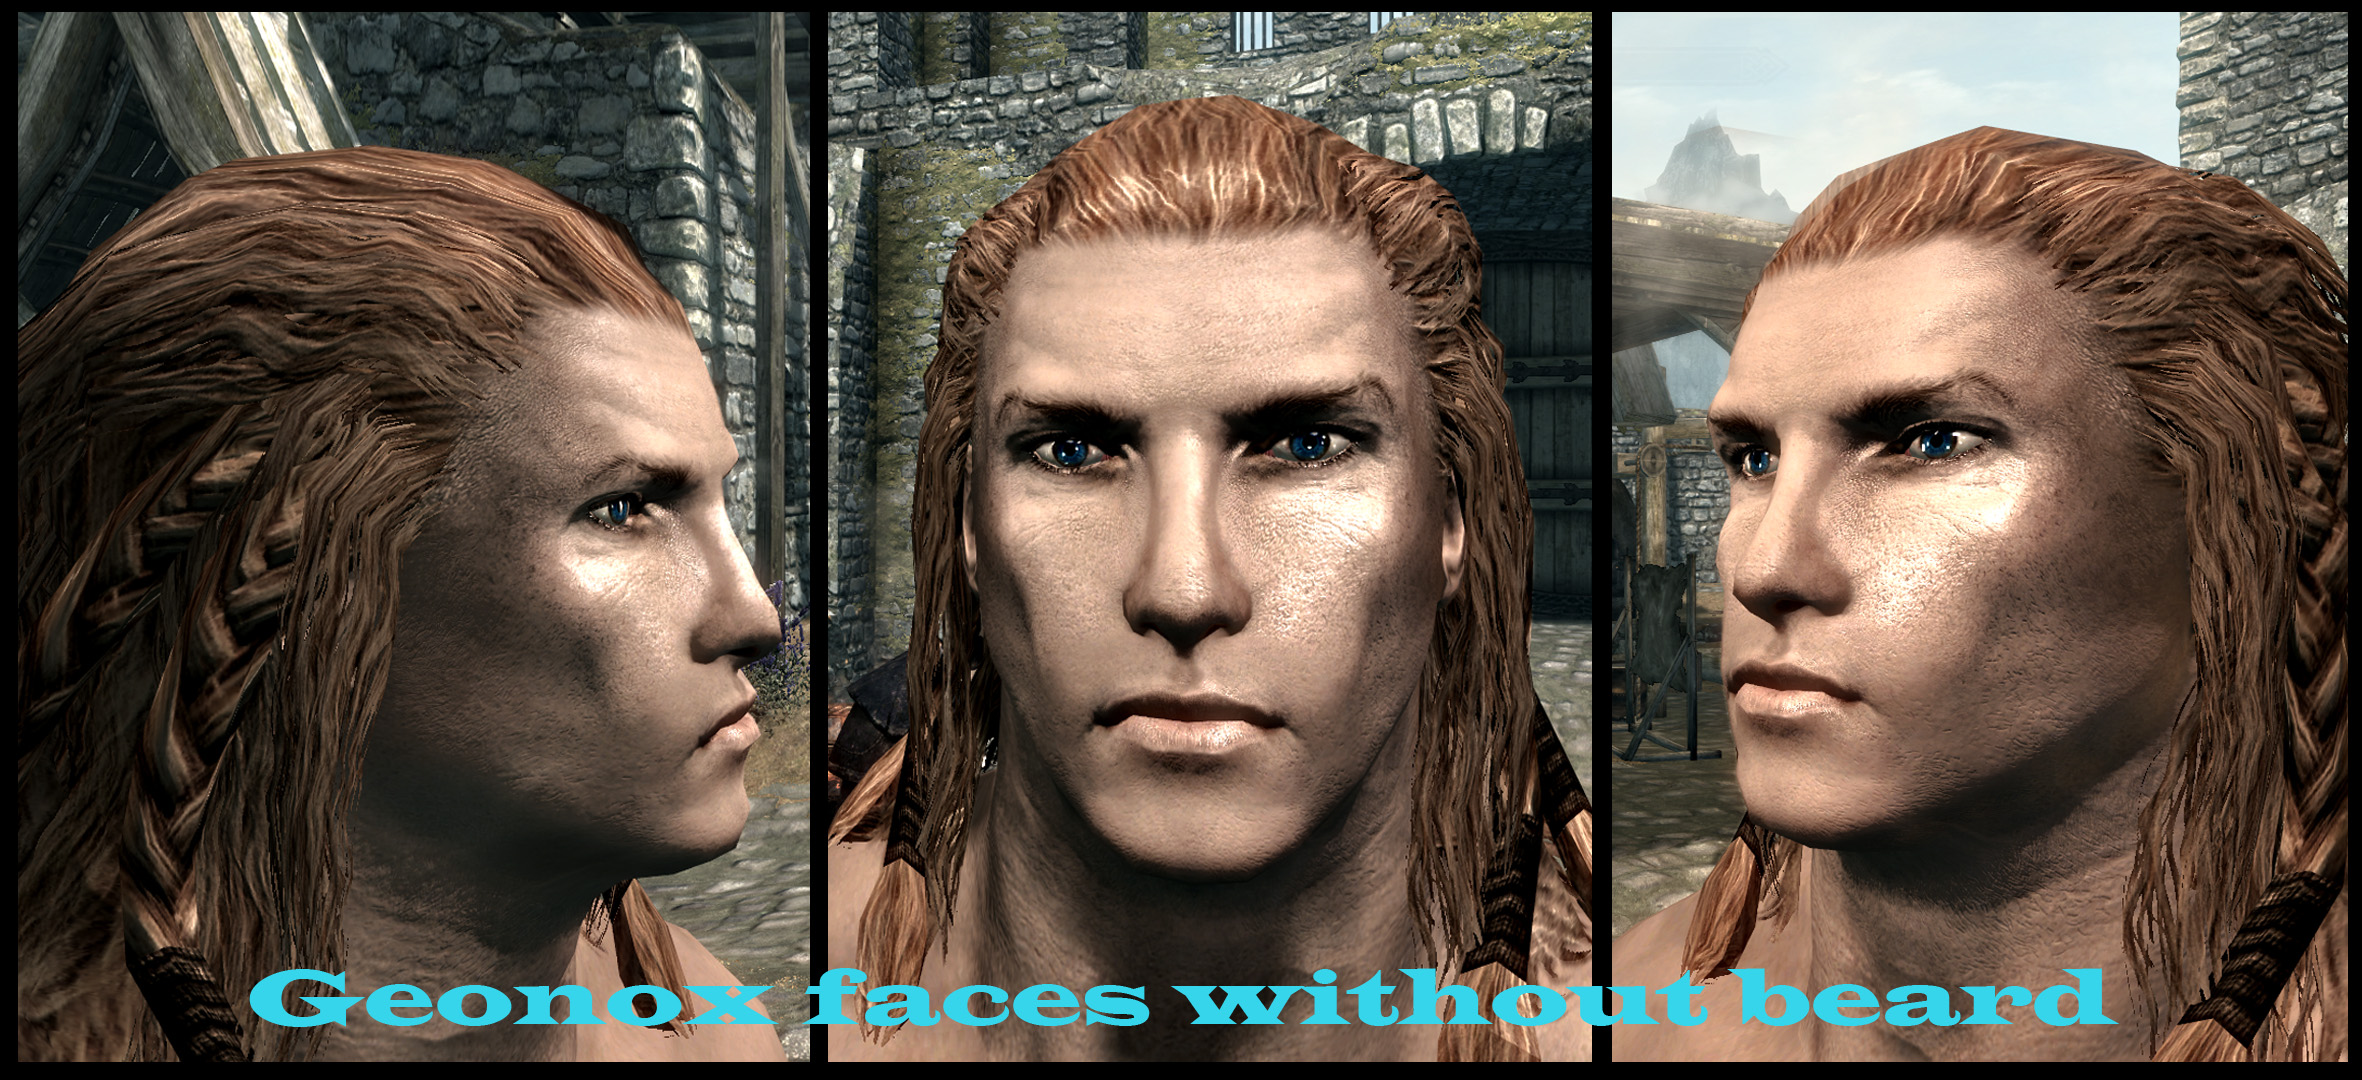 Geonox Faces Without Beard